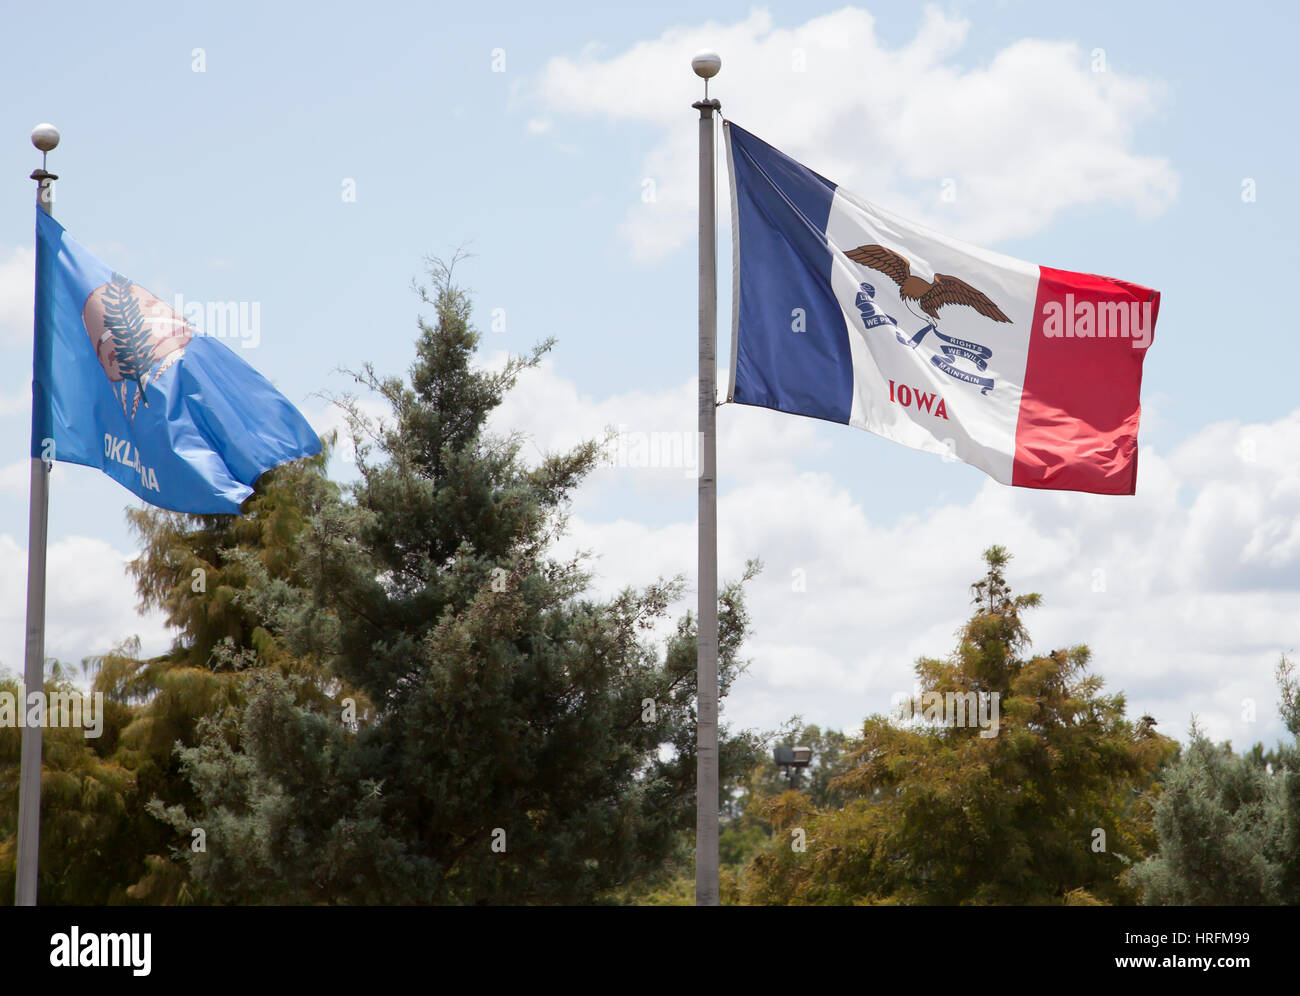 Iowa and Oklahoma state flags waving against blue sky - Stock Image